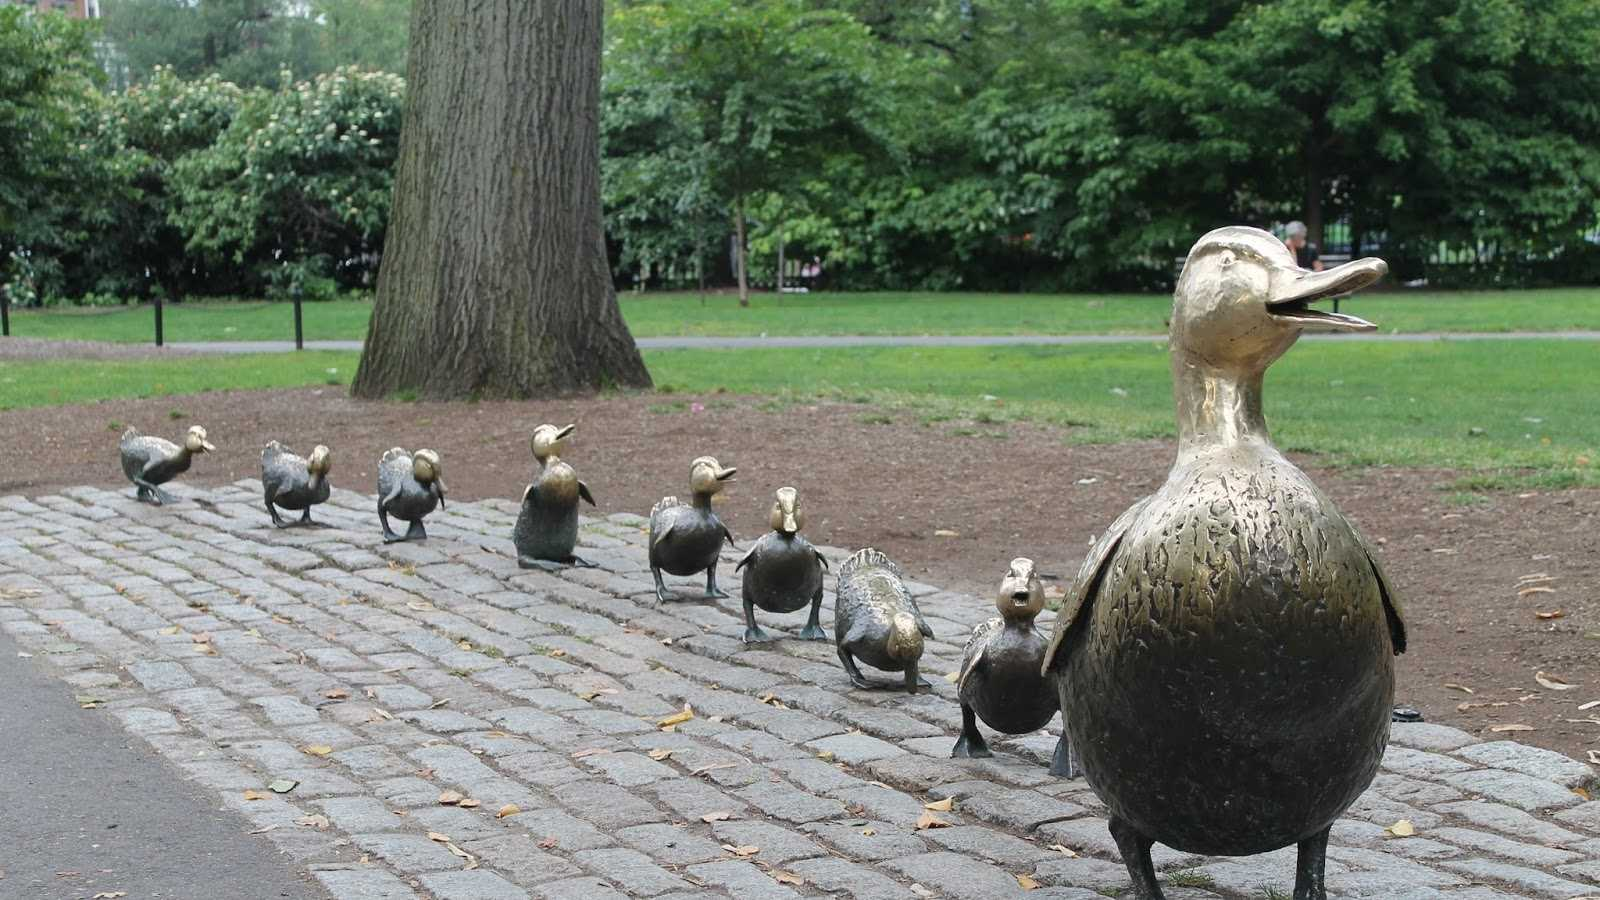 Make Way for Ducklings is the official Massachusetts children's book.